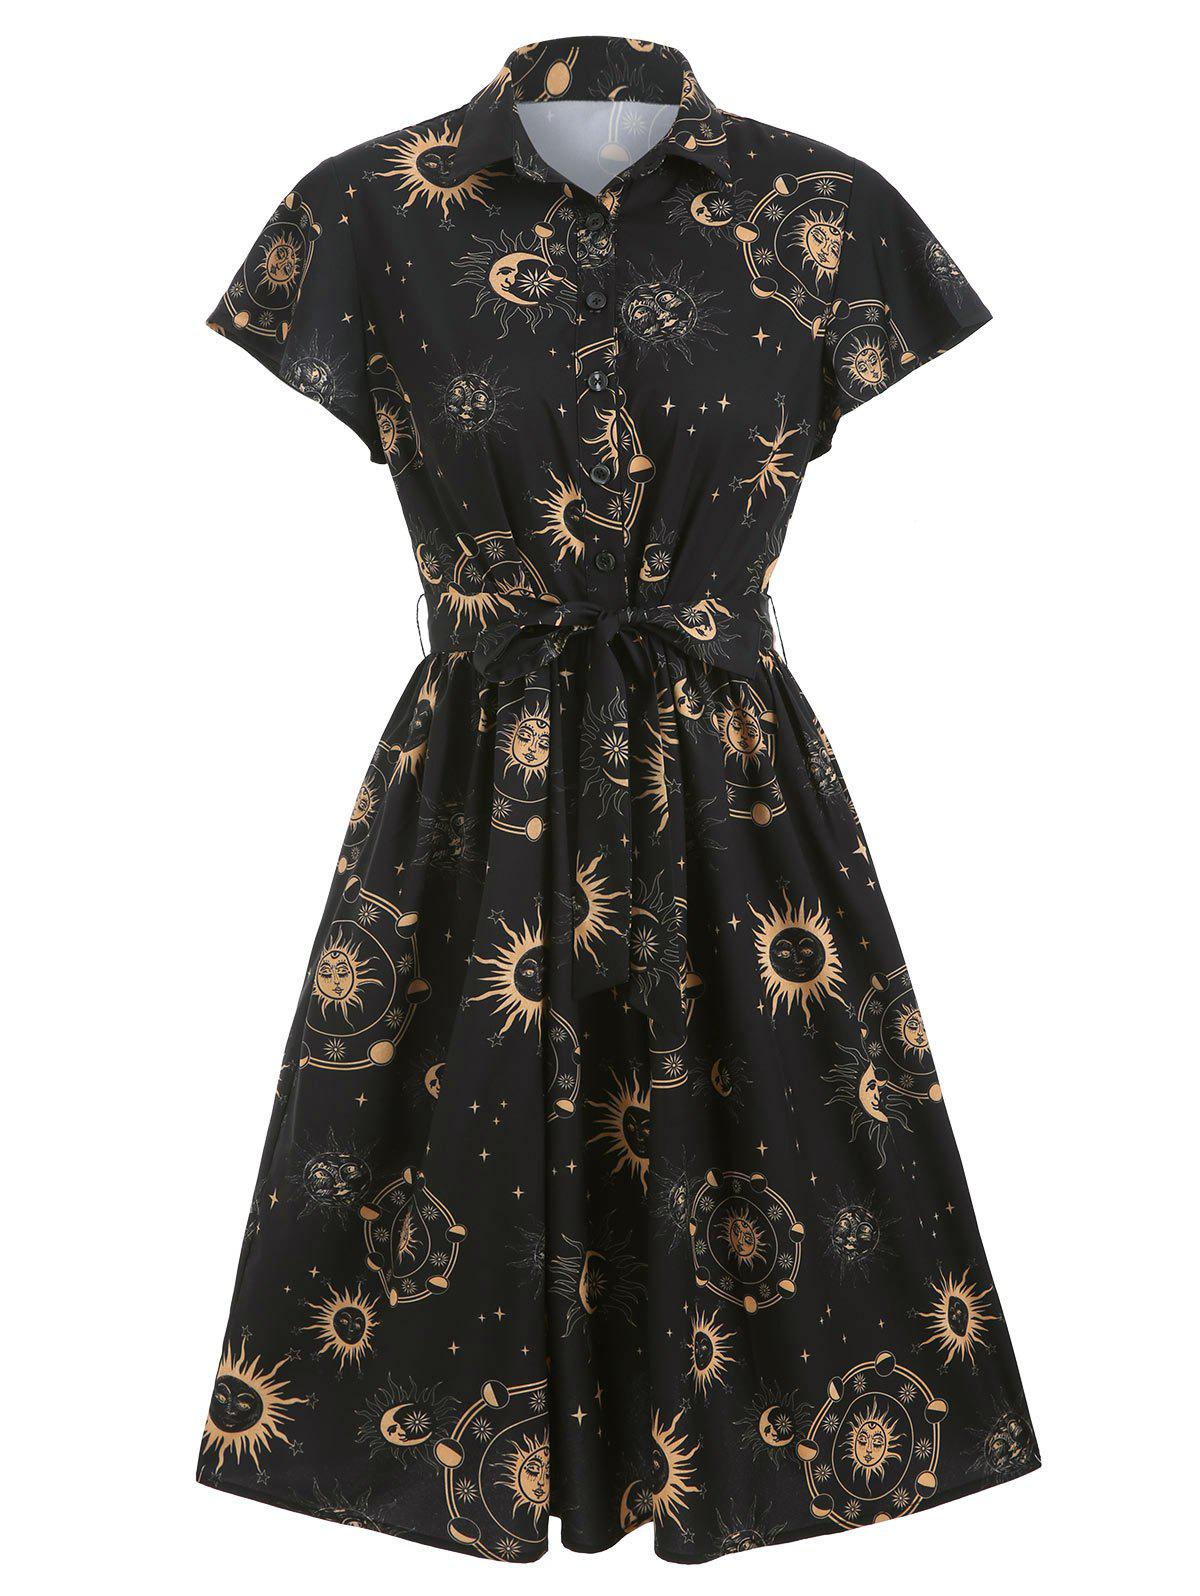 Fancy Sun Moon and Star Print Belted Skater Dress